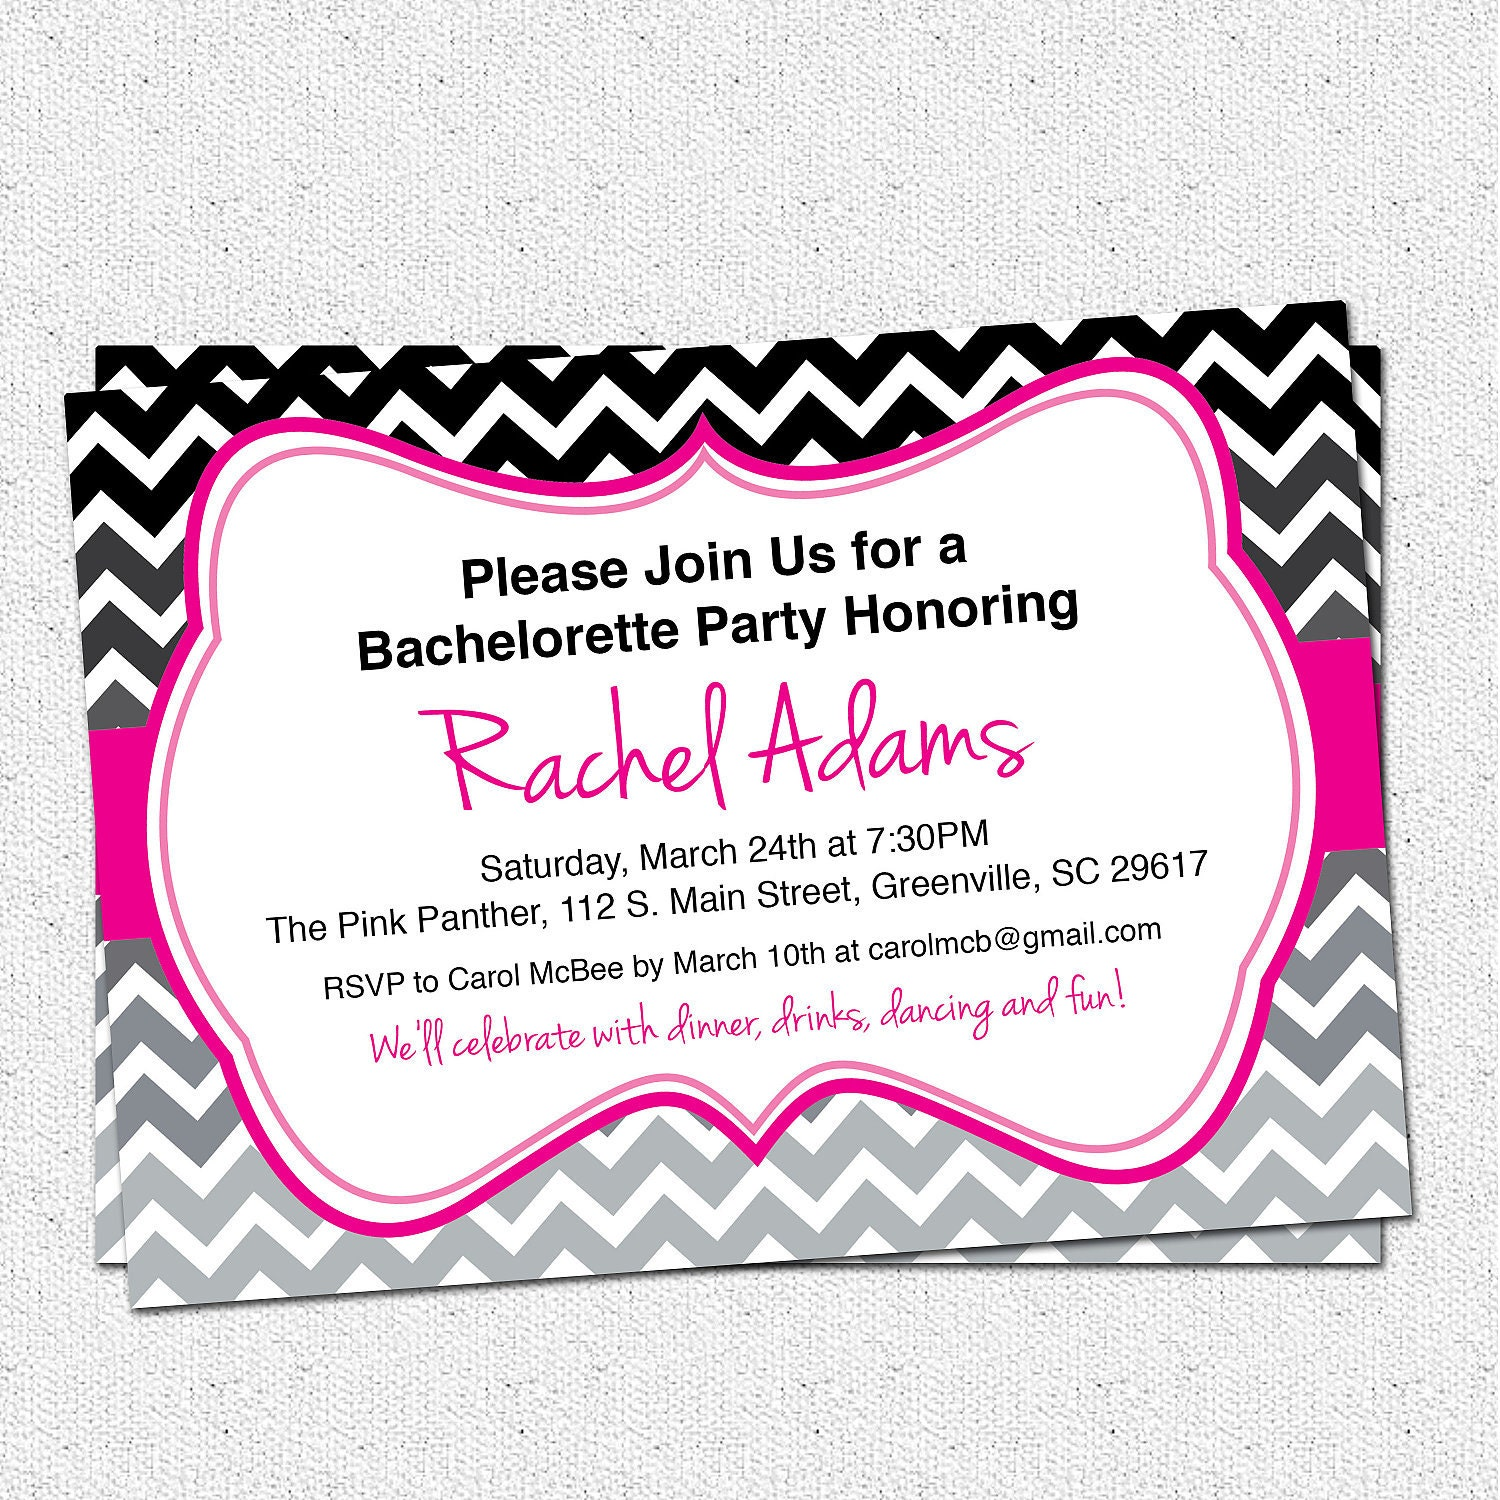 Bachelorette Invites Free with adorable invitation layout